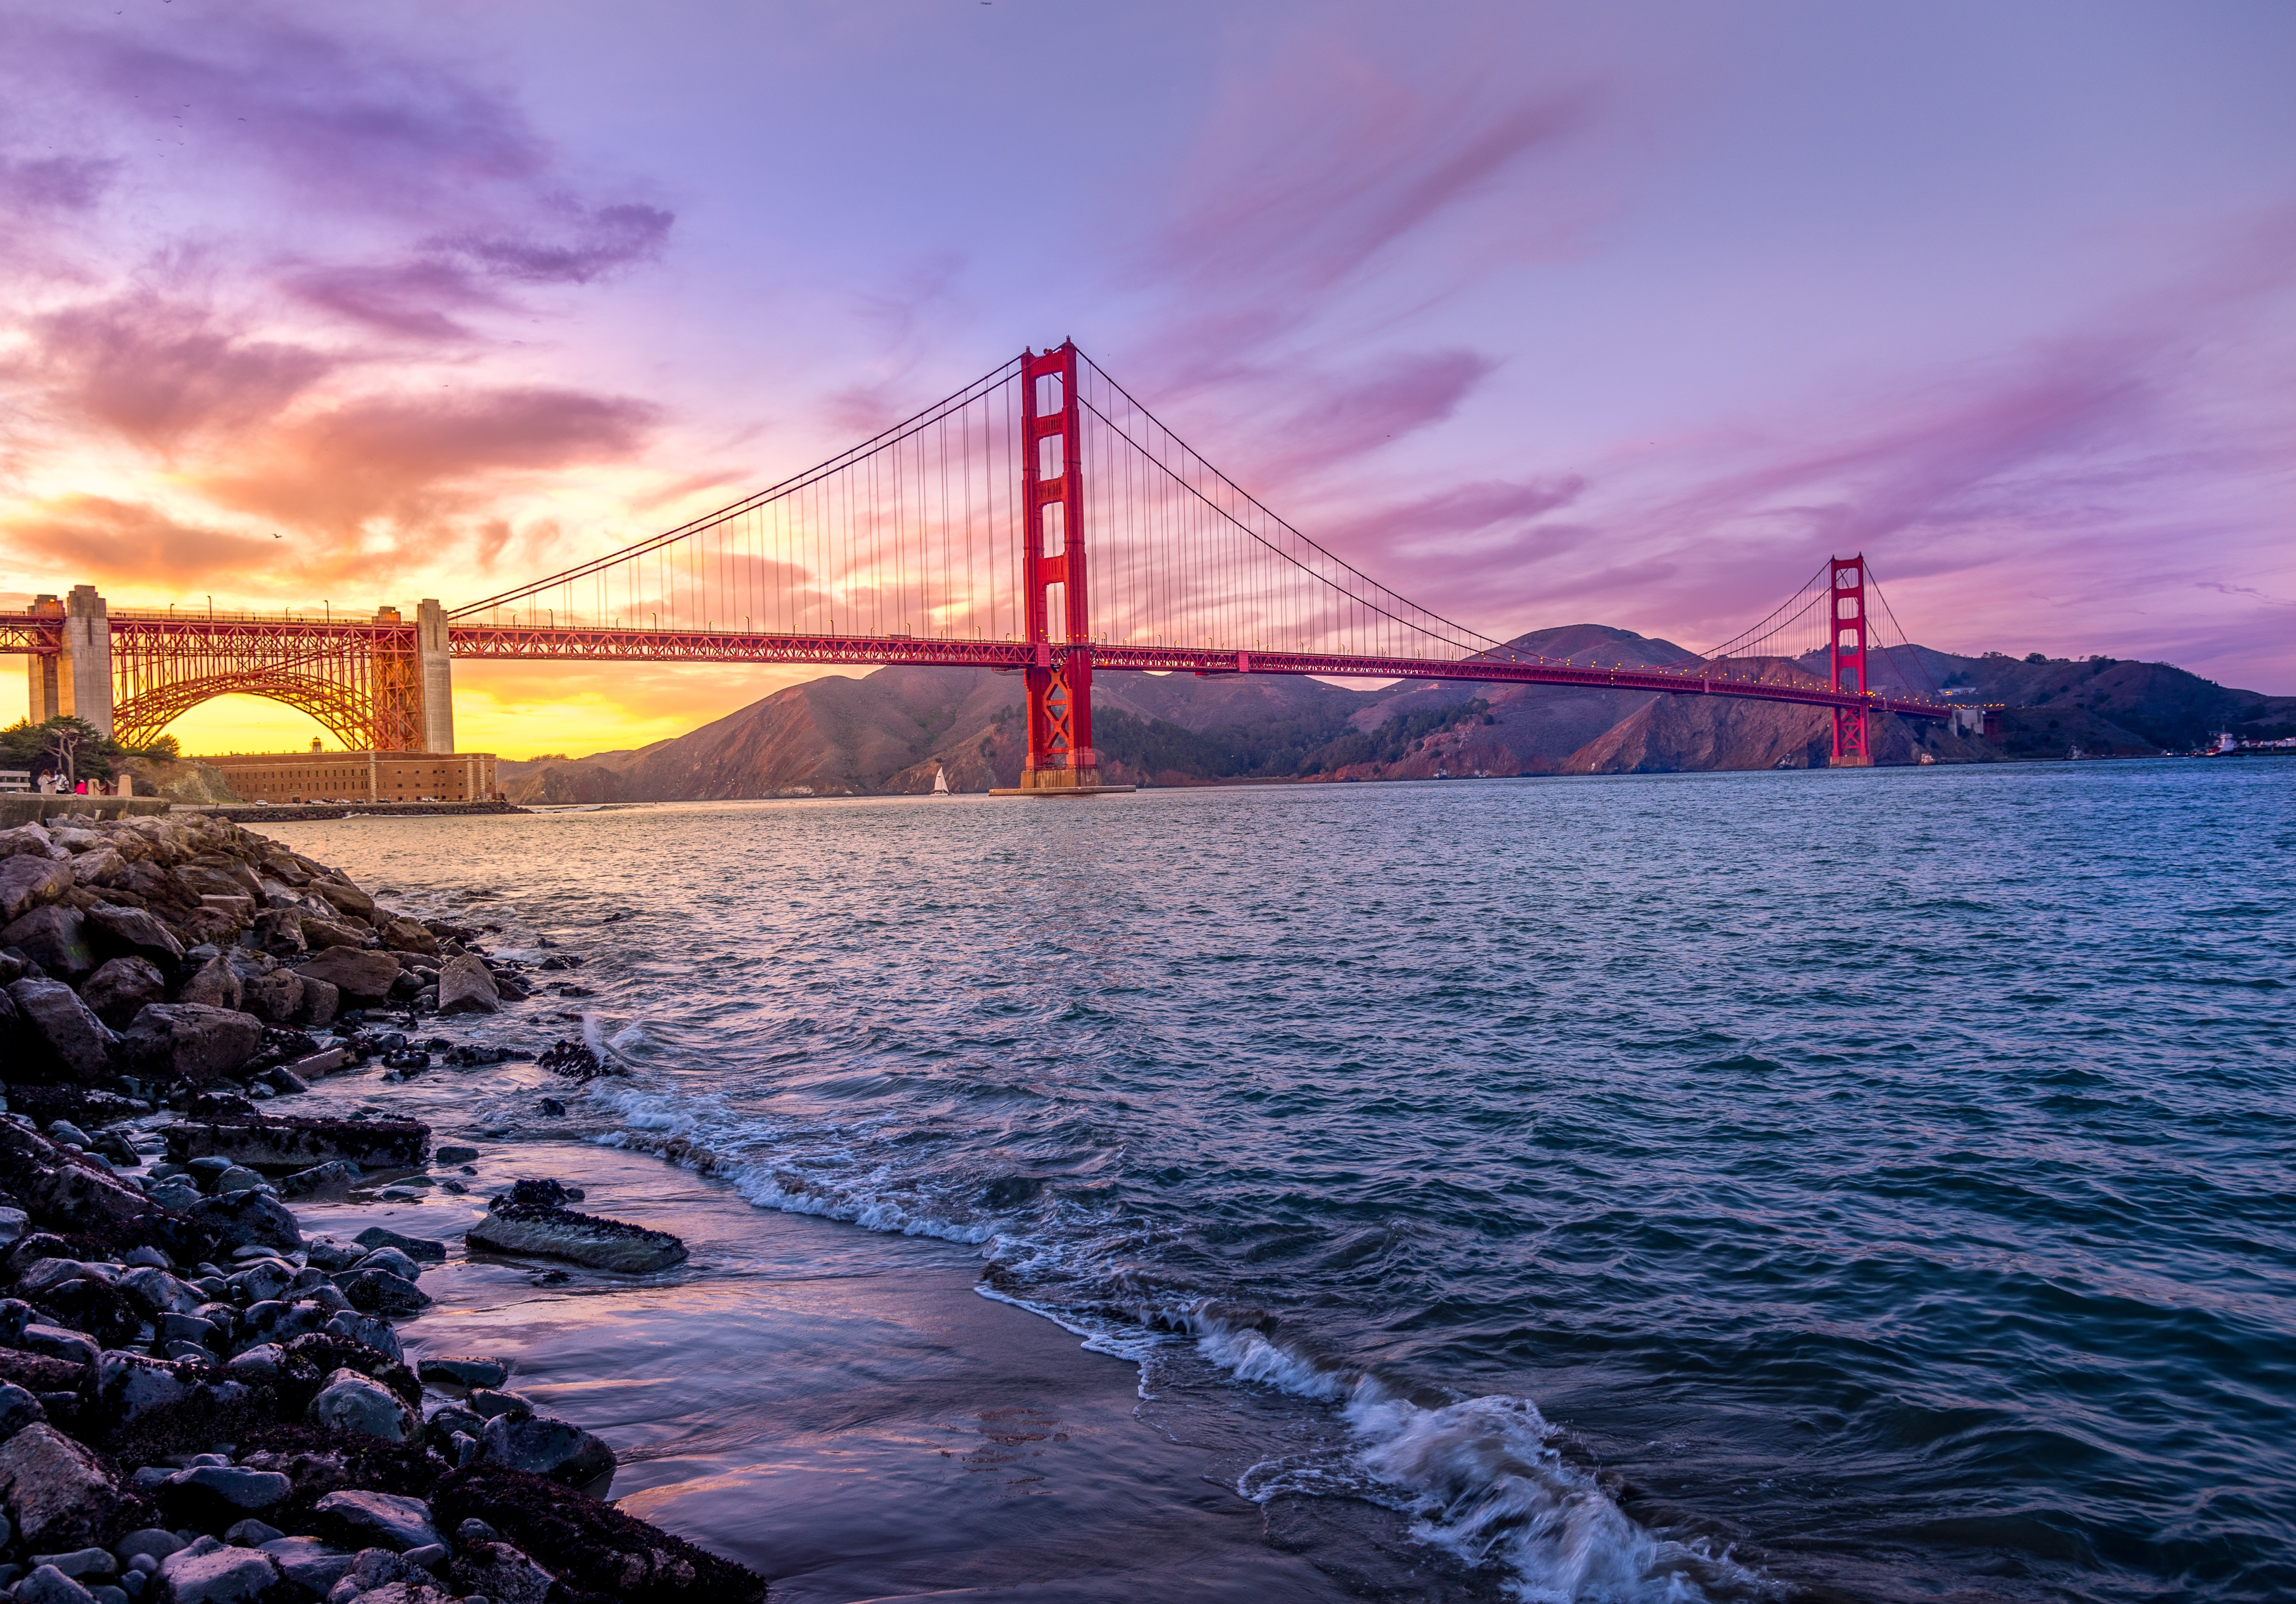 A purple and yellow sunset behind Golden Gate Bridge in San Fransisco, with waves breaking on the shoreline.